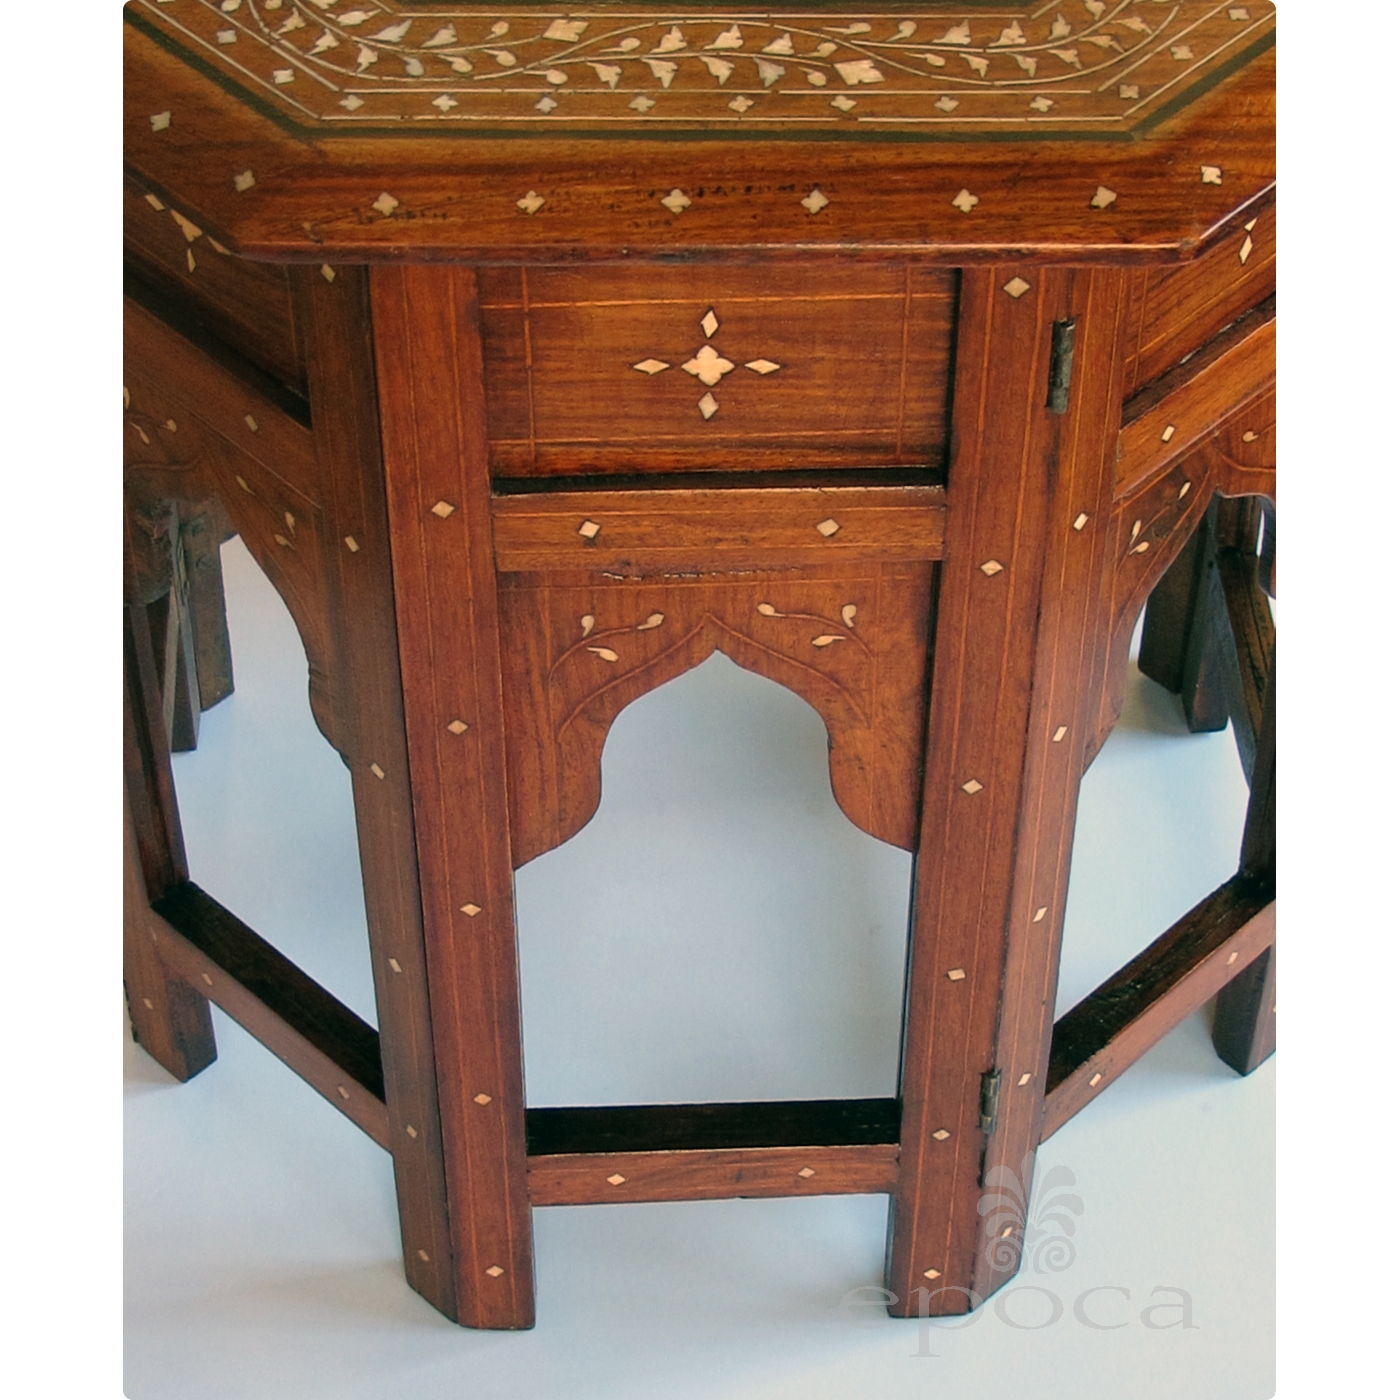 ... An Intricately Inlaid Anglo Indian 19th Century Octagonal Sandalwood  Side/tea Table With Bone Inlay ...